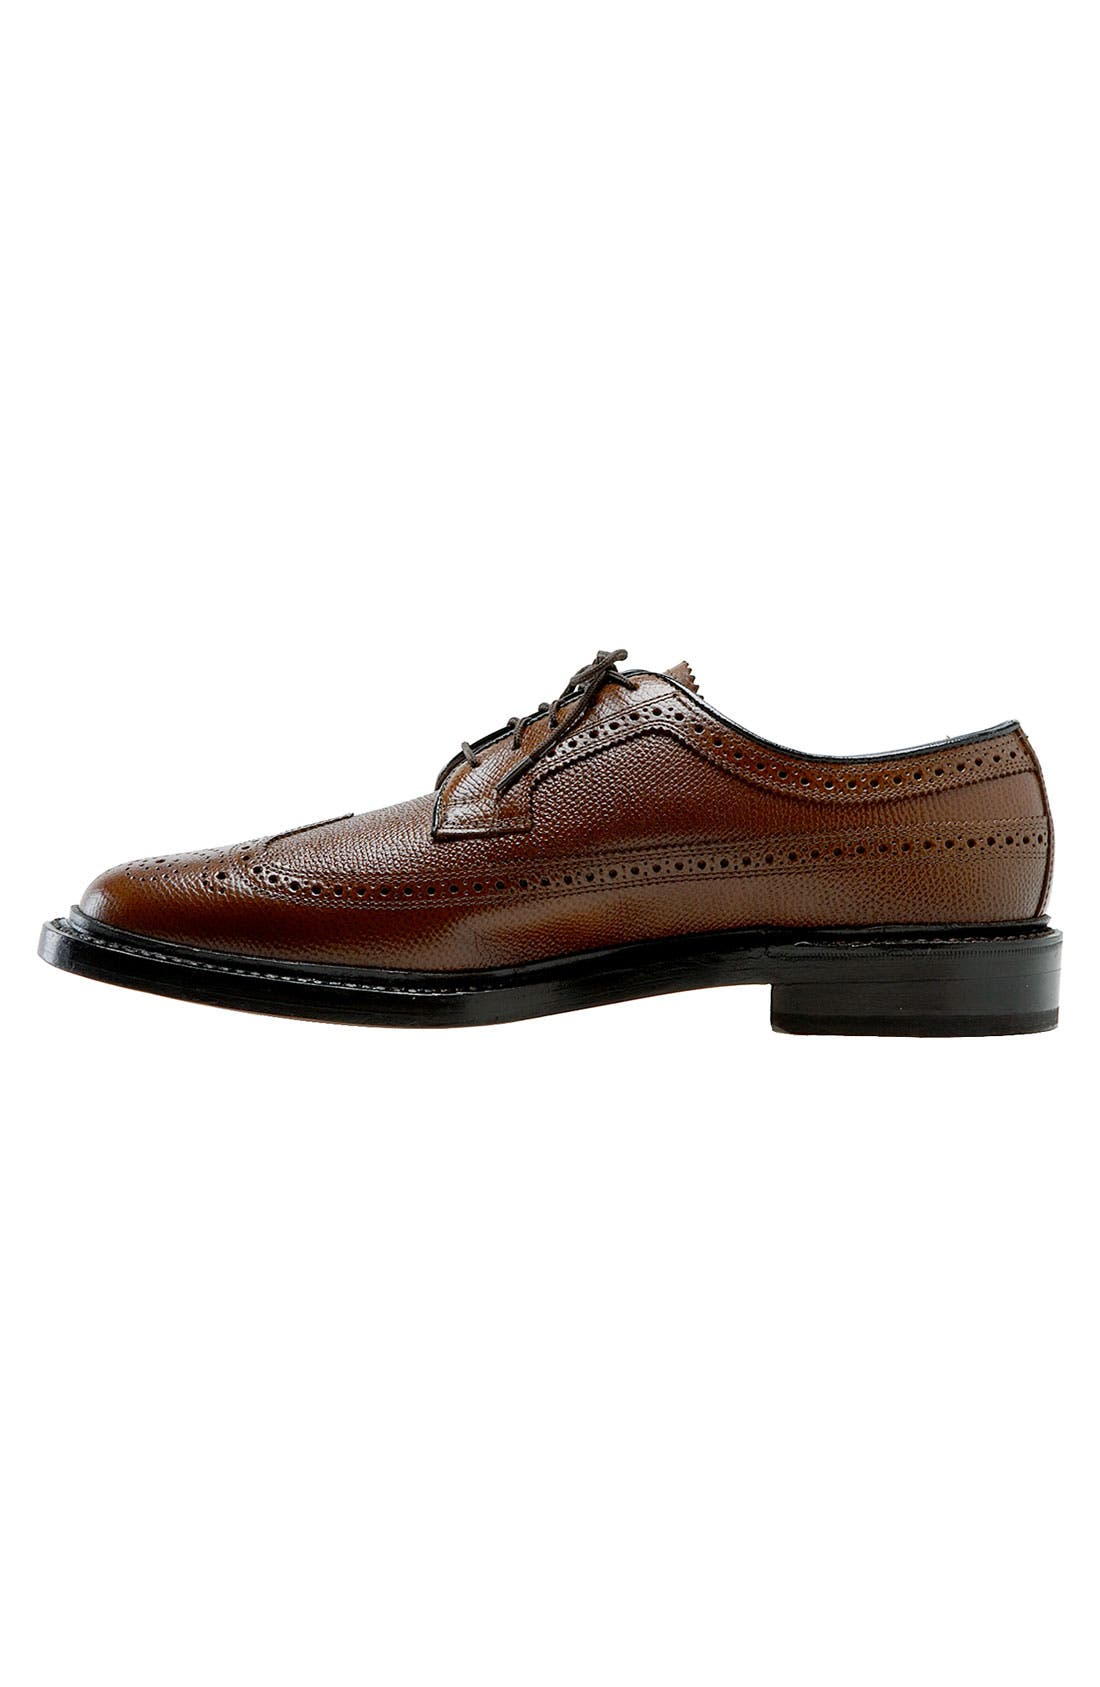 Alternate Image 2  - Florsheim 'Kenmoor' Wingtip Oxford